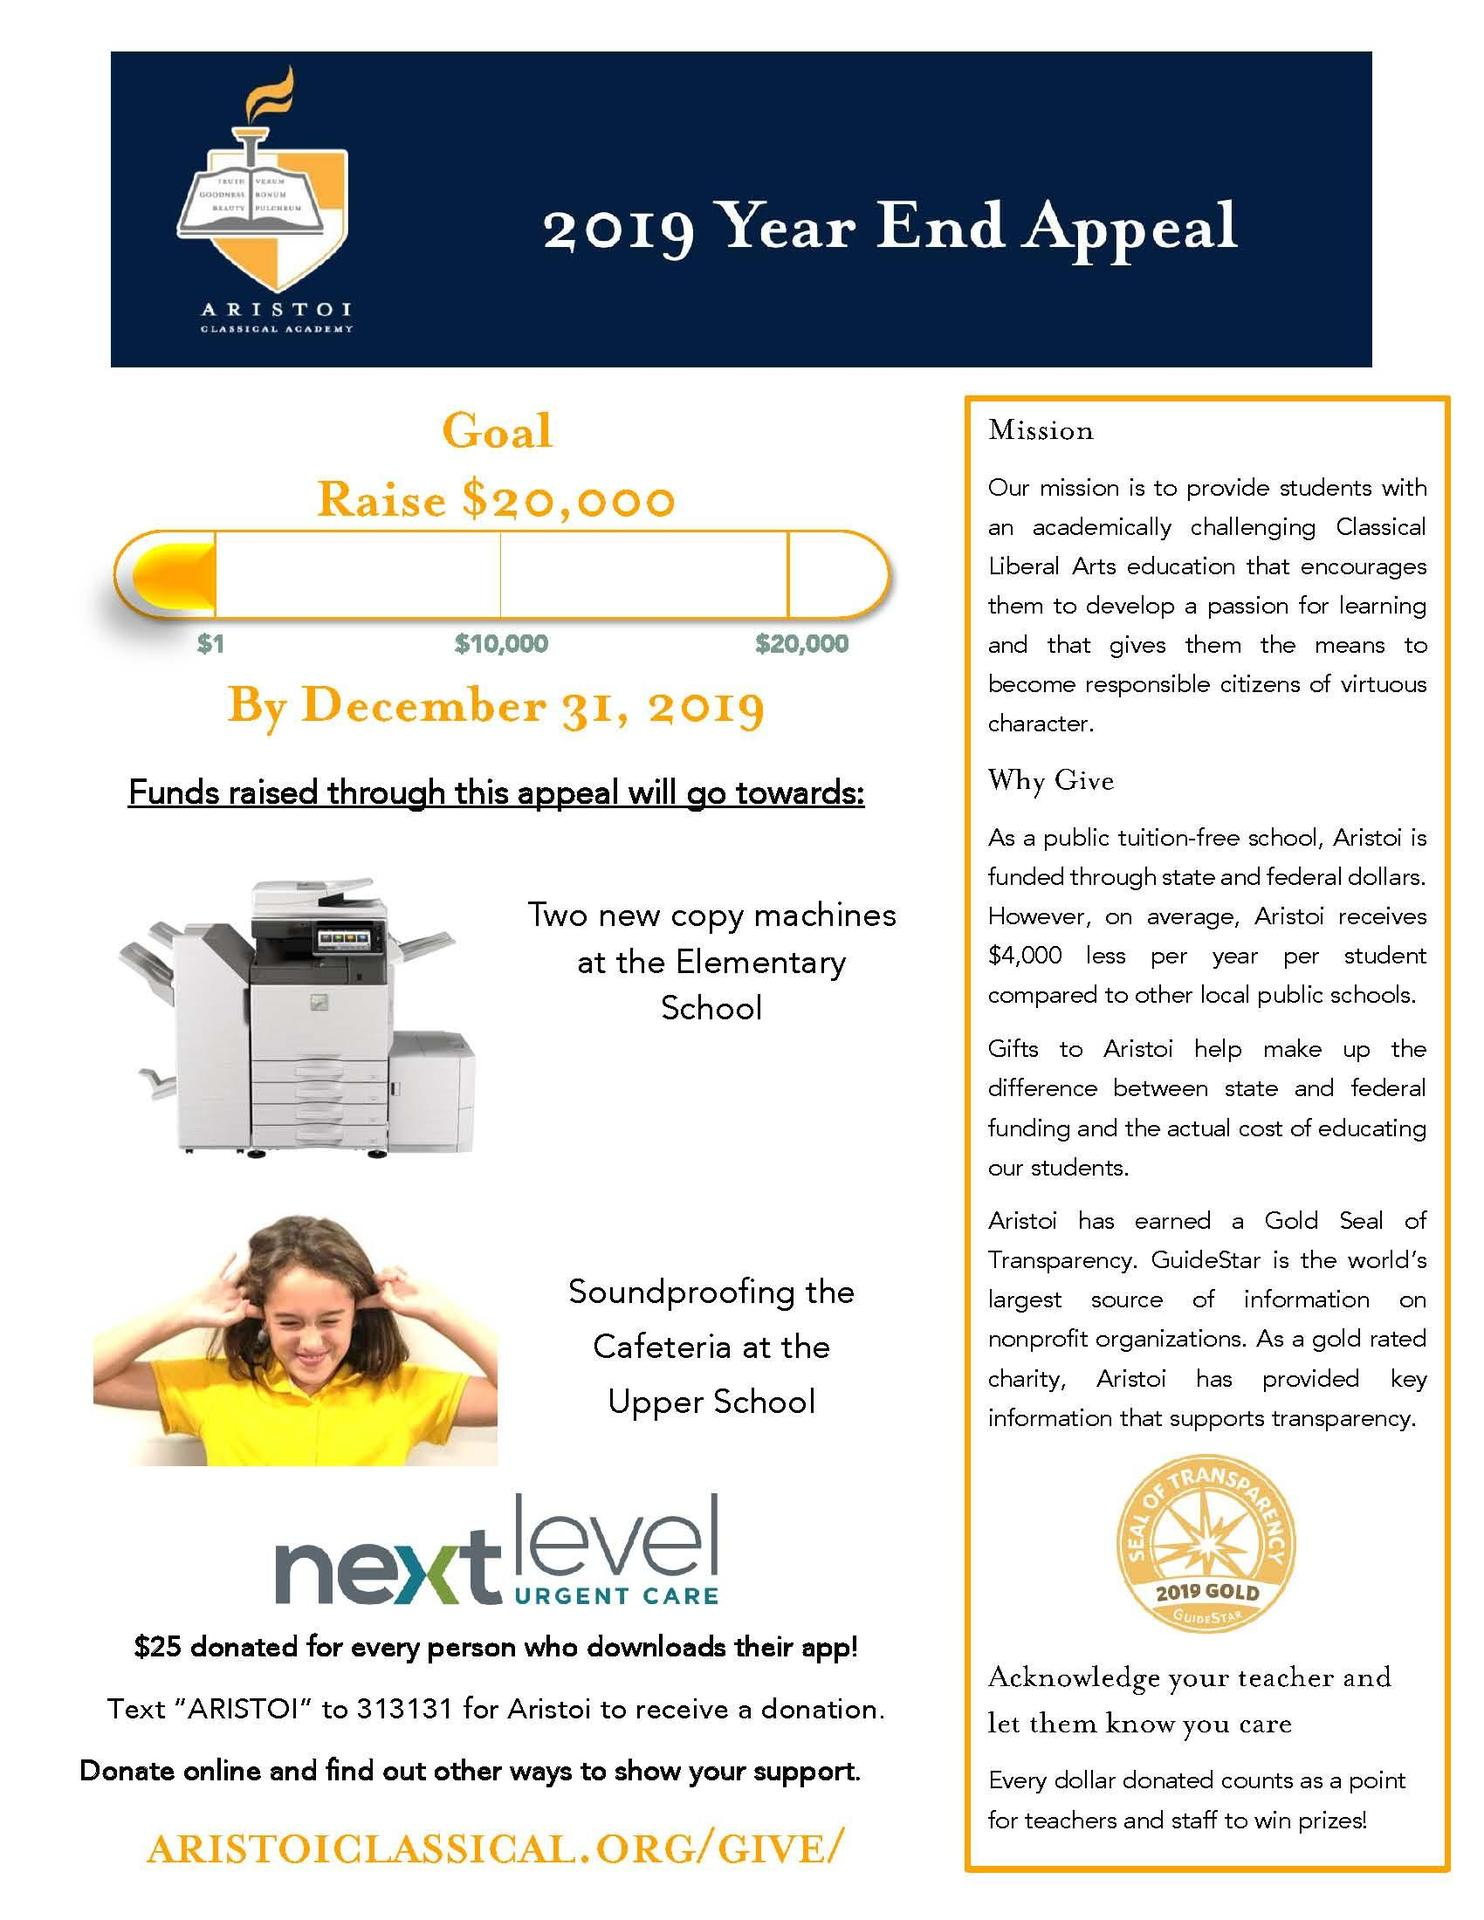 2019 Year End Appeal Flyer